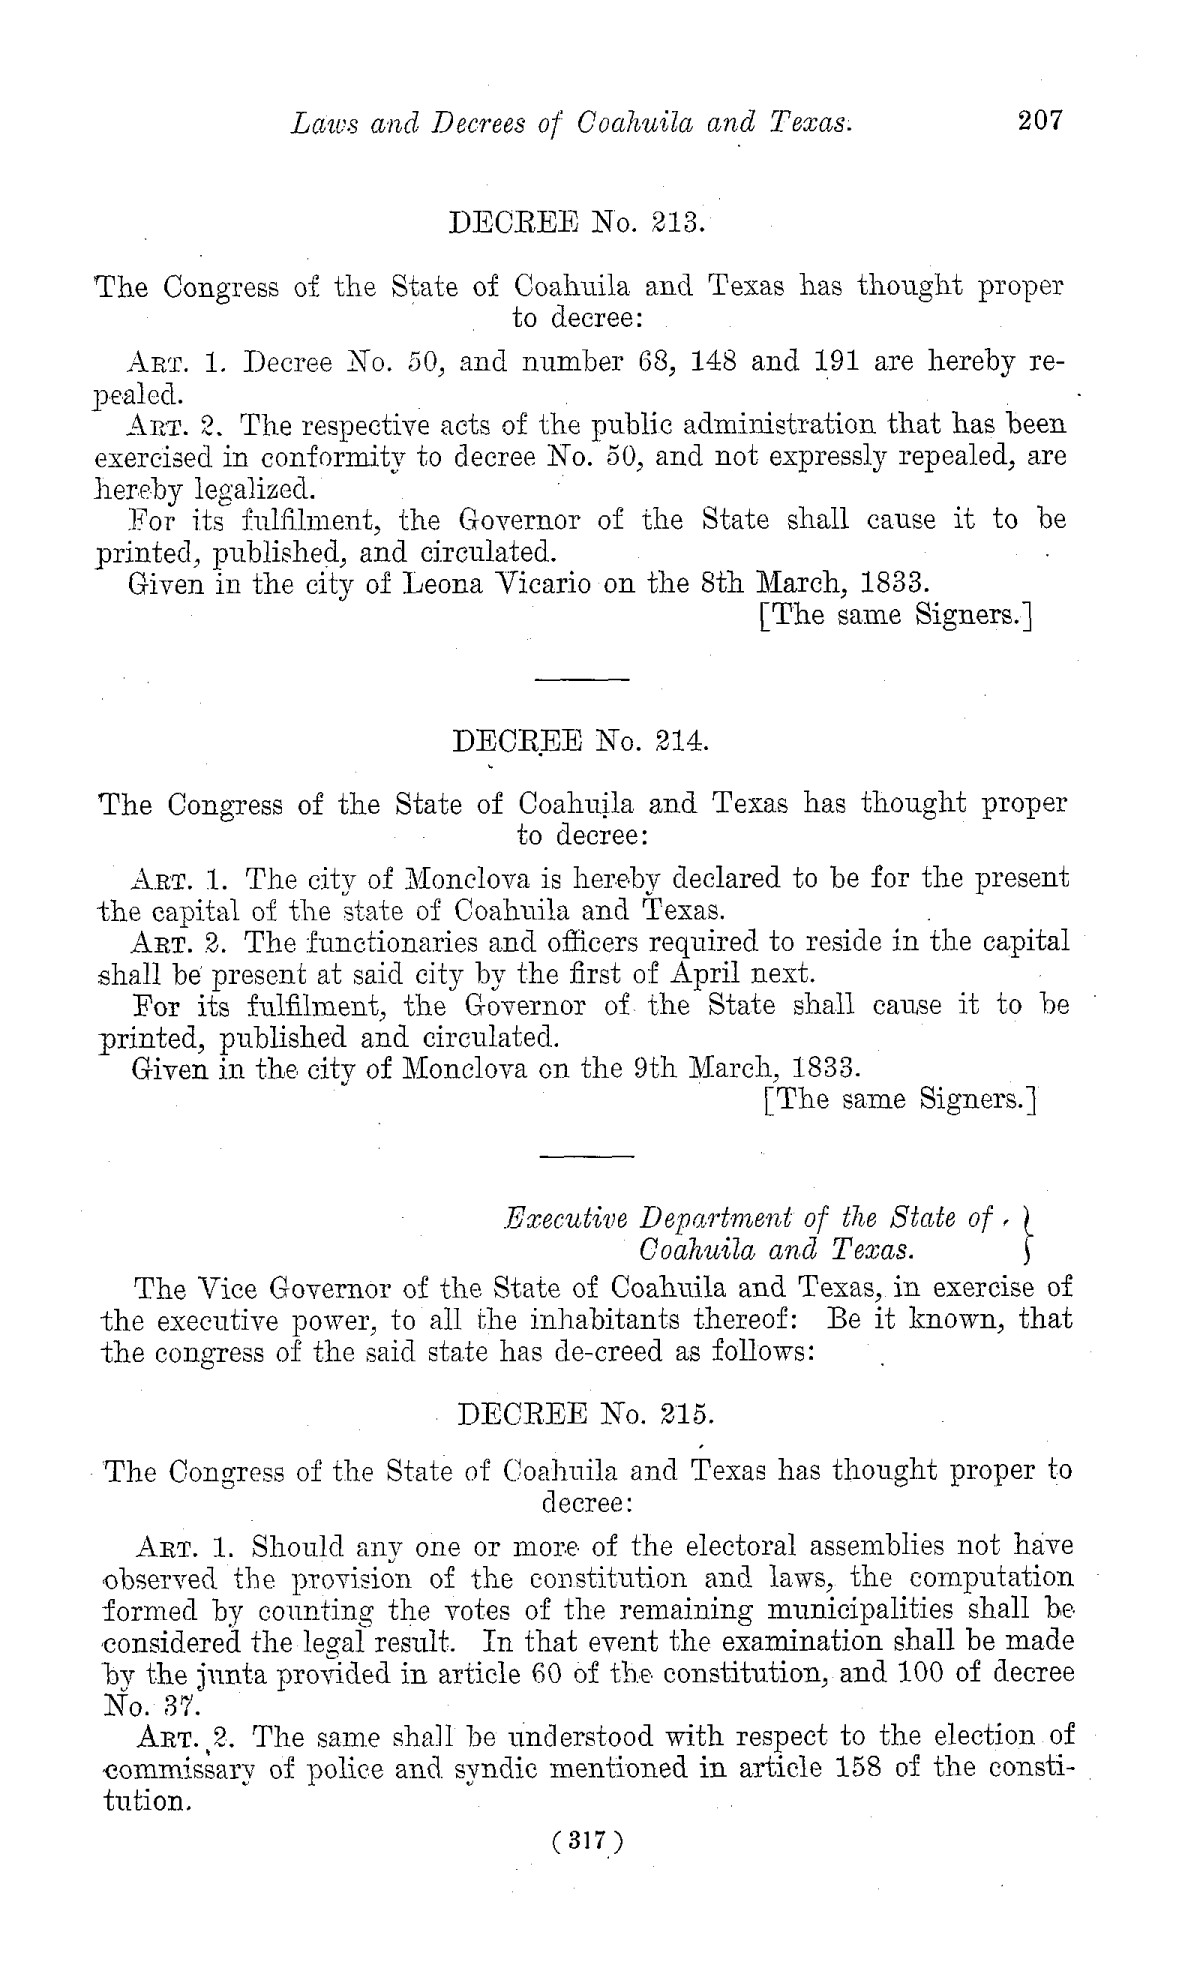 The Laws of Texas, 1822-1897 Volume 1                                                                                                      317